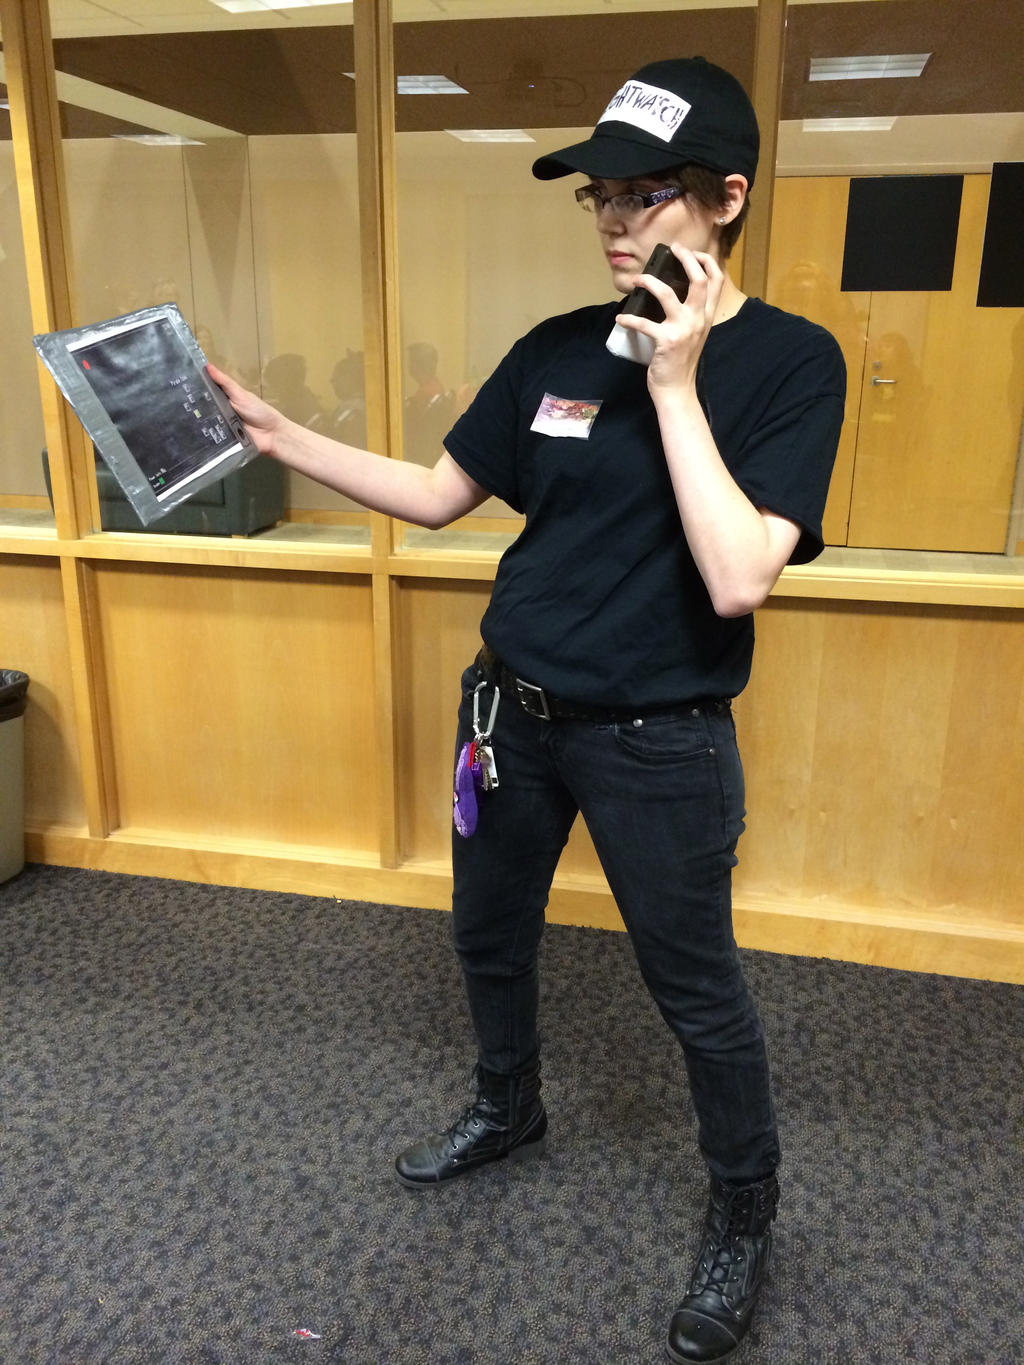 ... Halloween 2014 costume Mike the Security Guard by Lime-Green-Transport & Halloween 2014 costume: Mike the Security Guard by Lime-Green ...